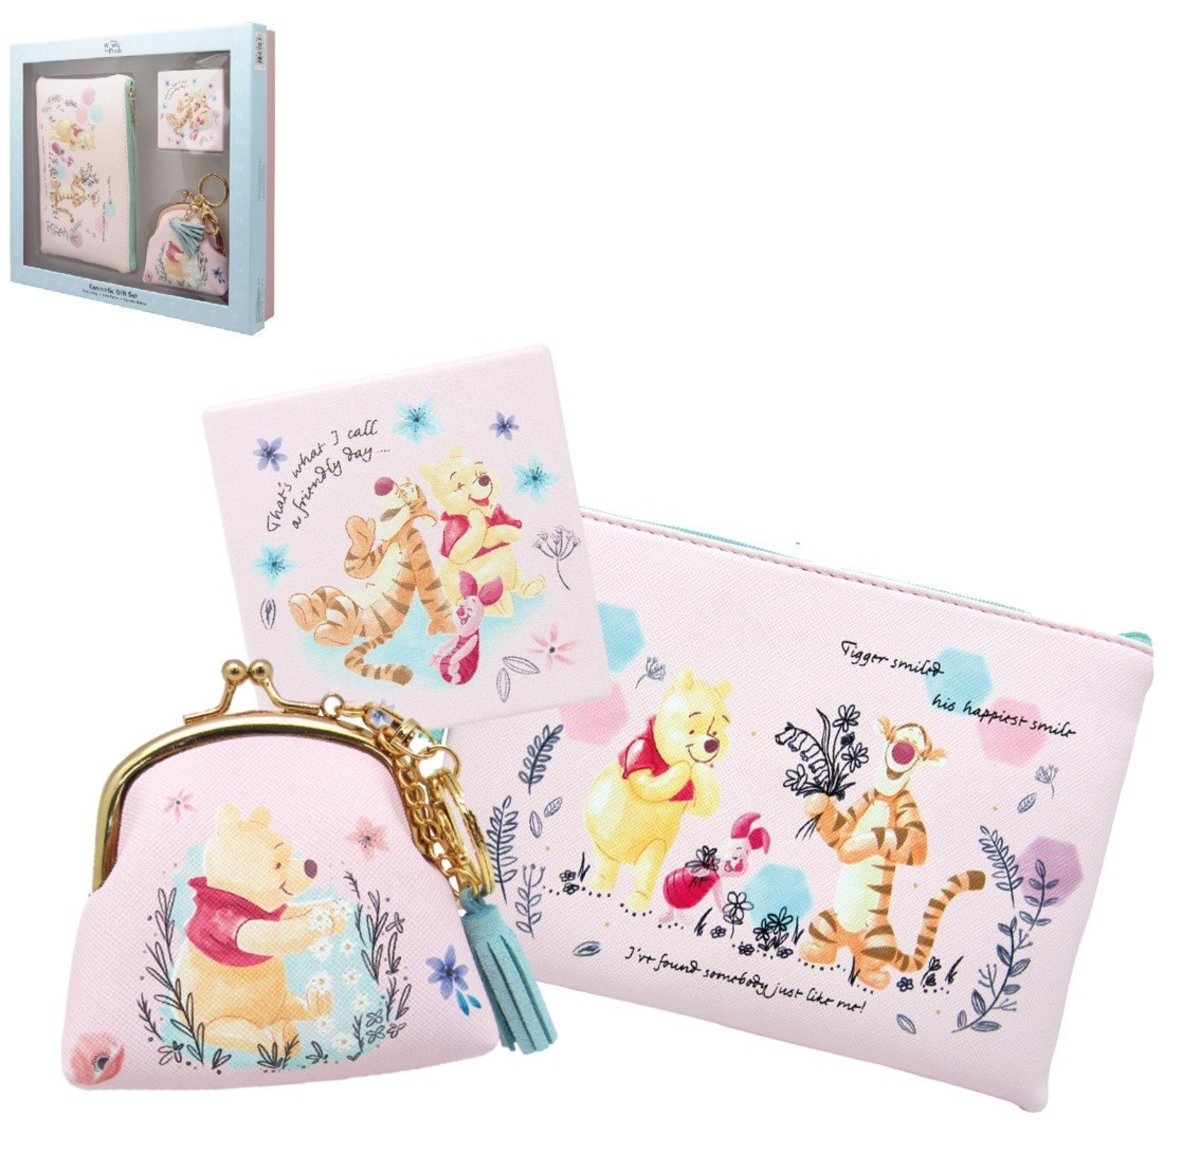 3P Cosmetic Gife Set (Licensed by Disney)